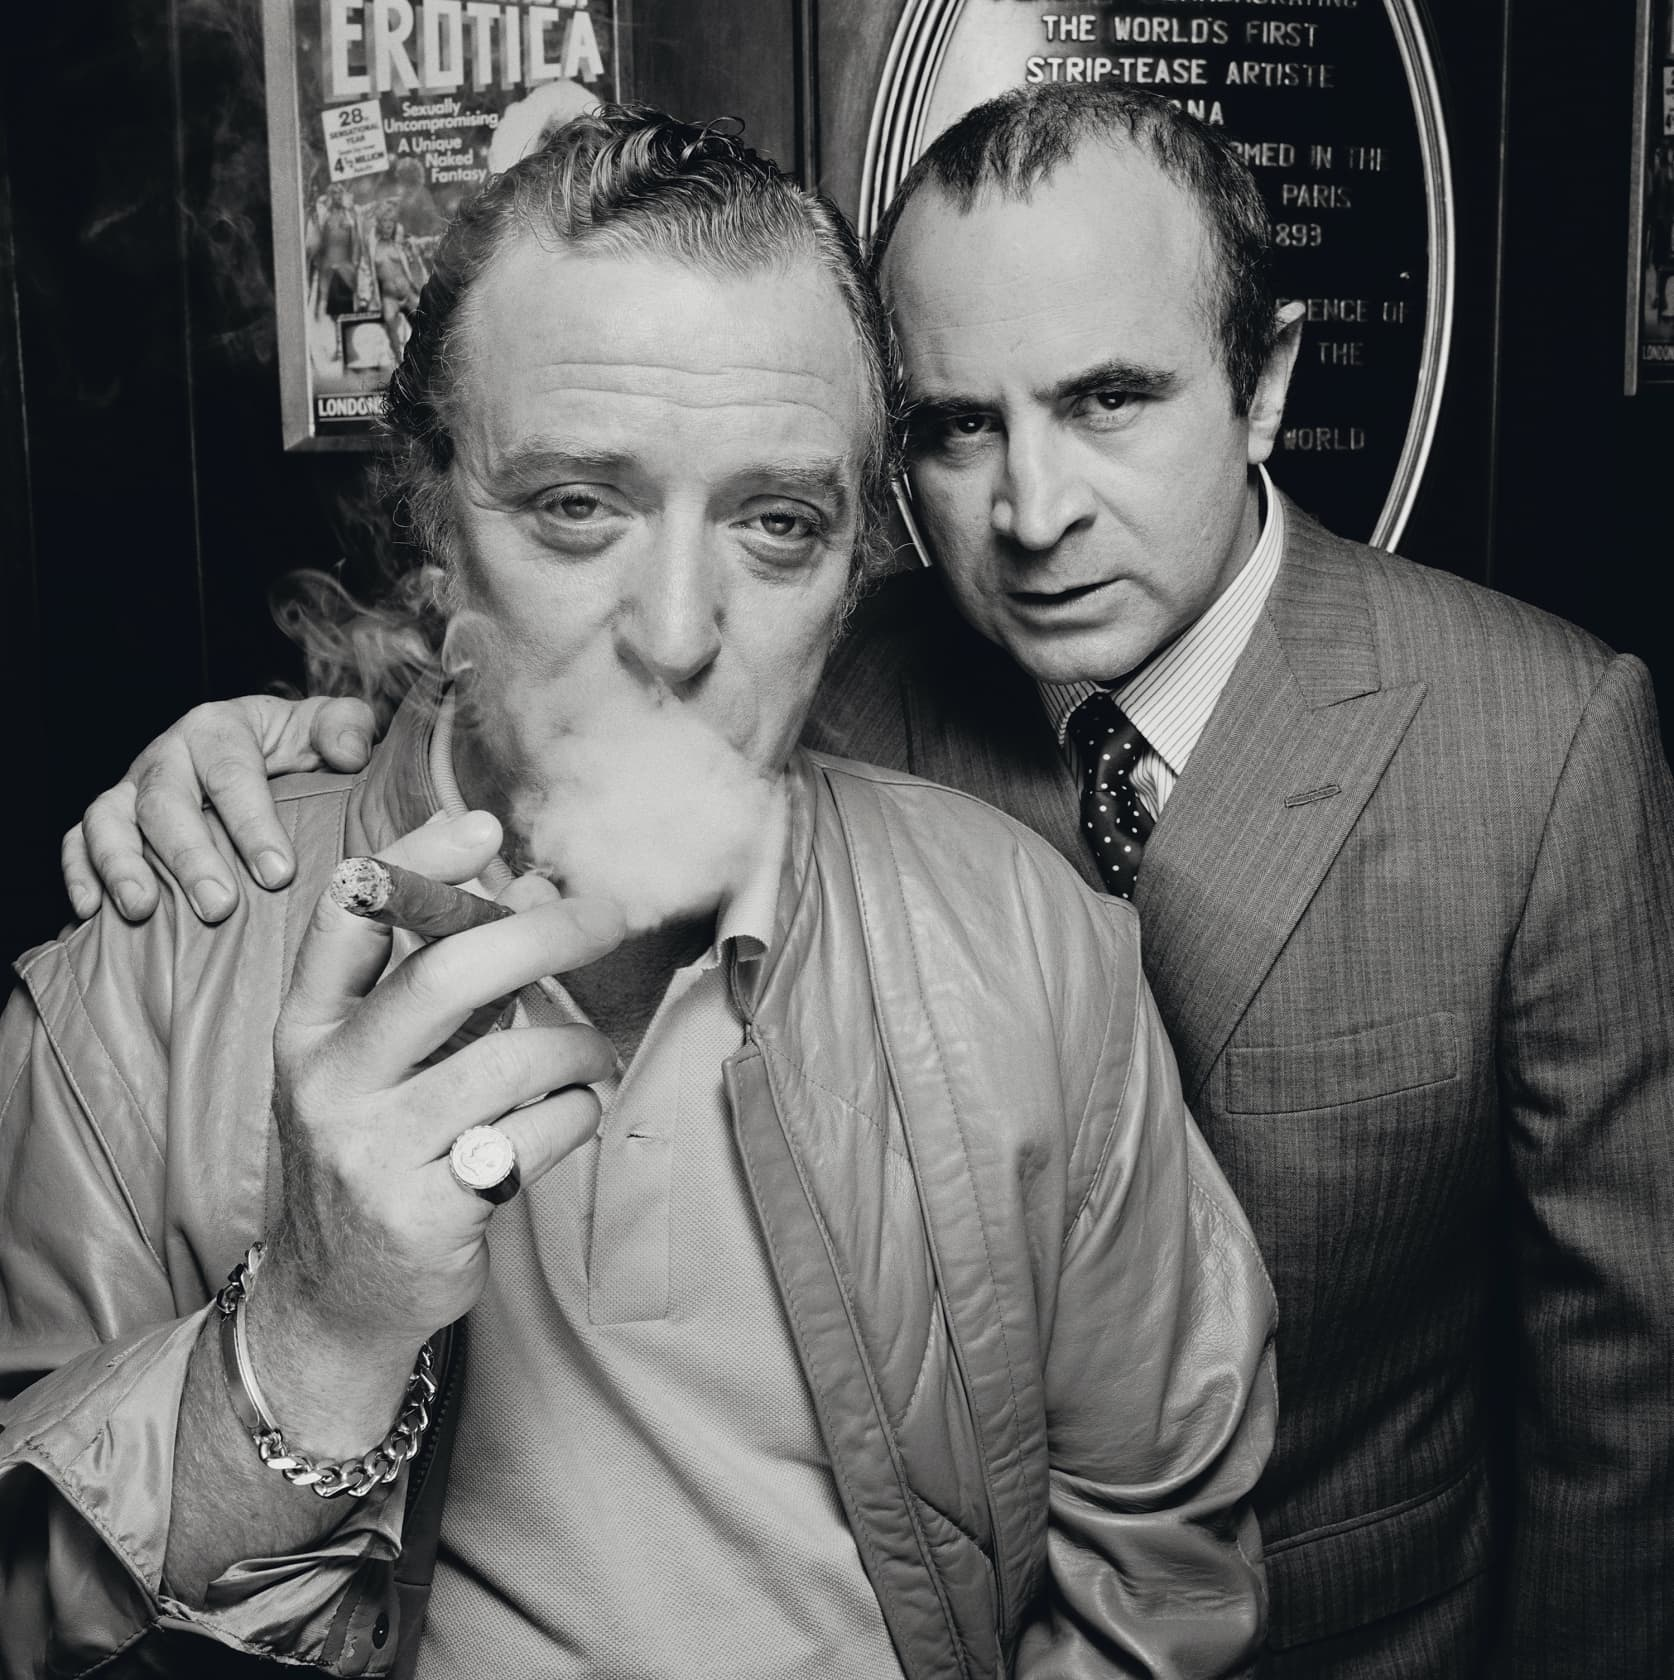 Terry O'Neill Bob Hoskins and Michael Caine, London Lifetime Gelatin Silver Print